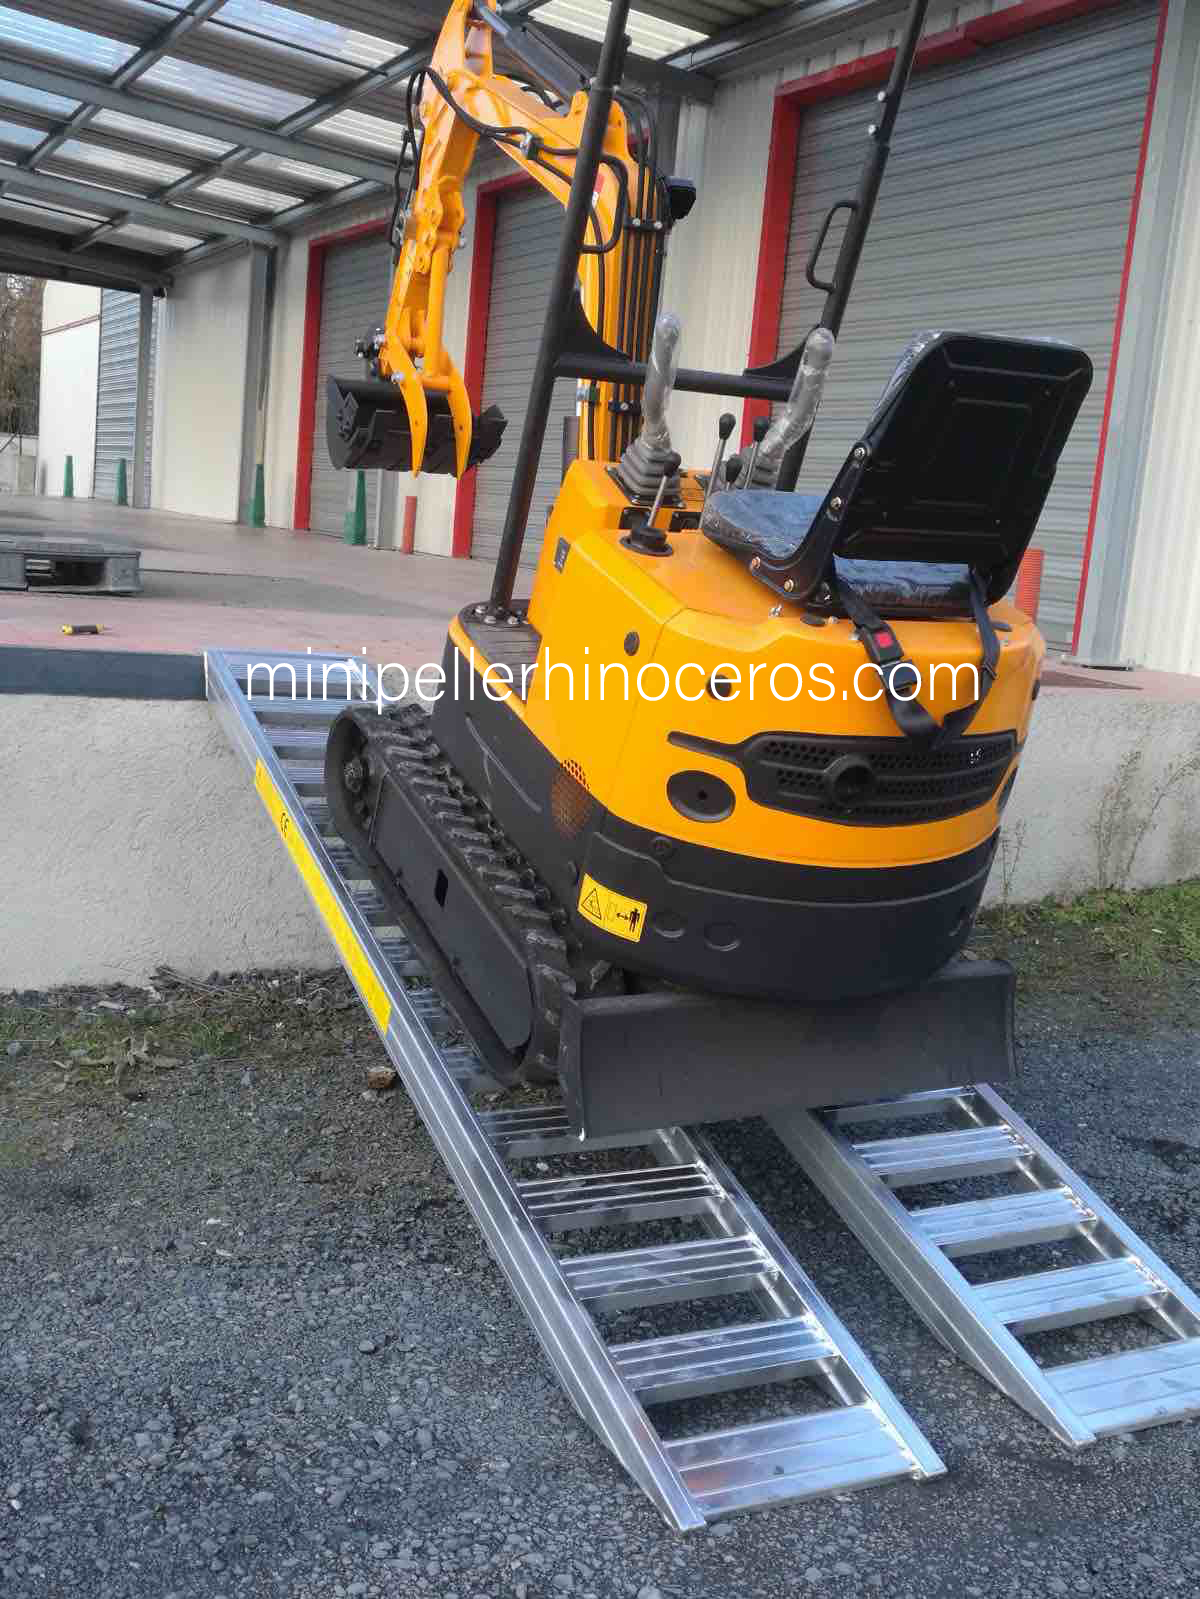 Loading of a Mini Excavator aluminium ramps